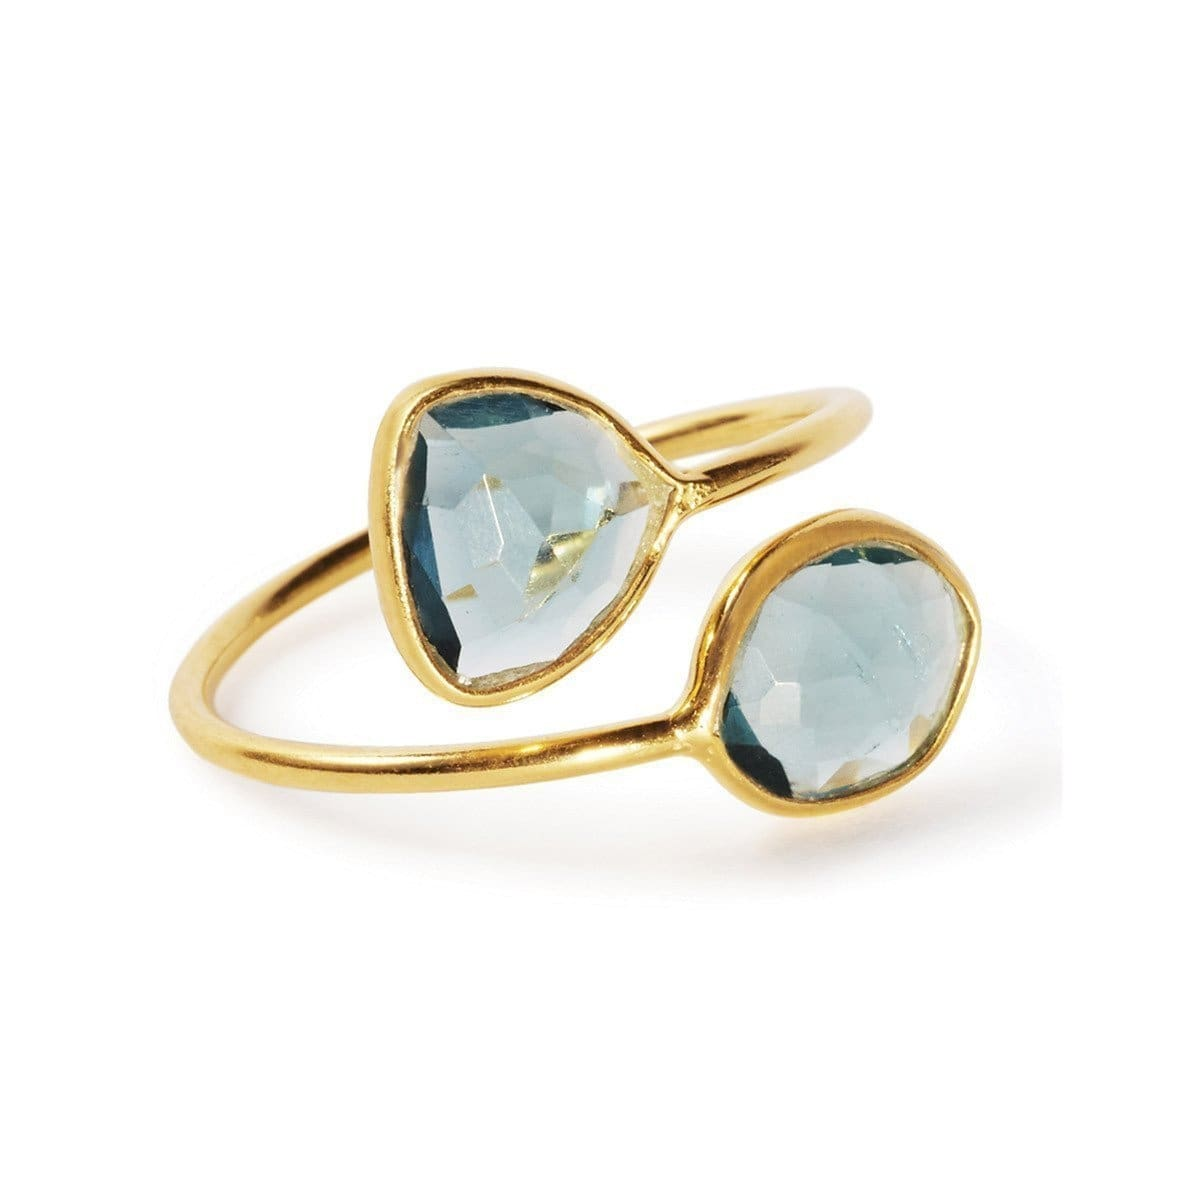 The Gemini Ring With London Topaz